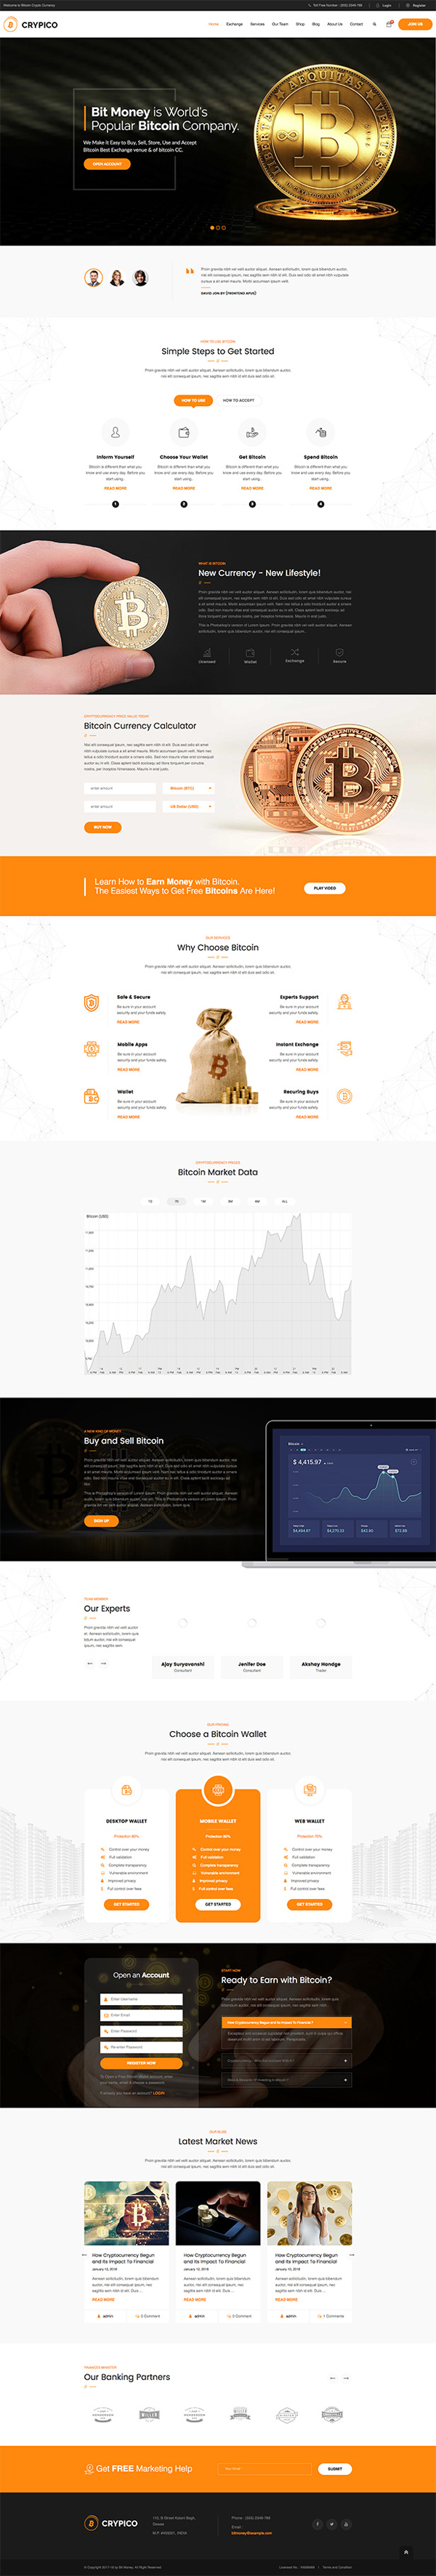 Crypico - Crypto Currency WordPress Theme